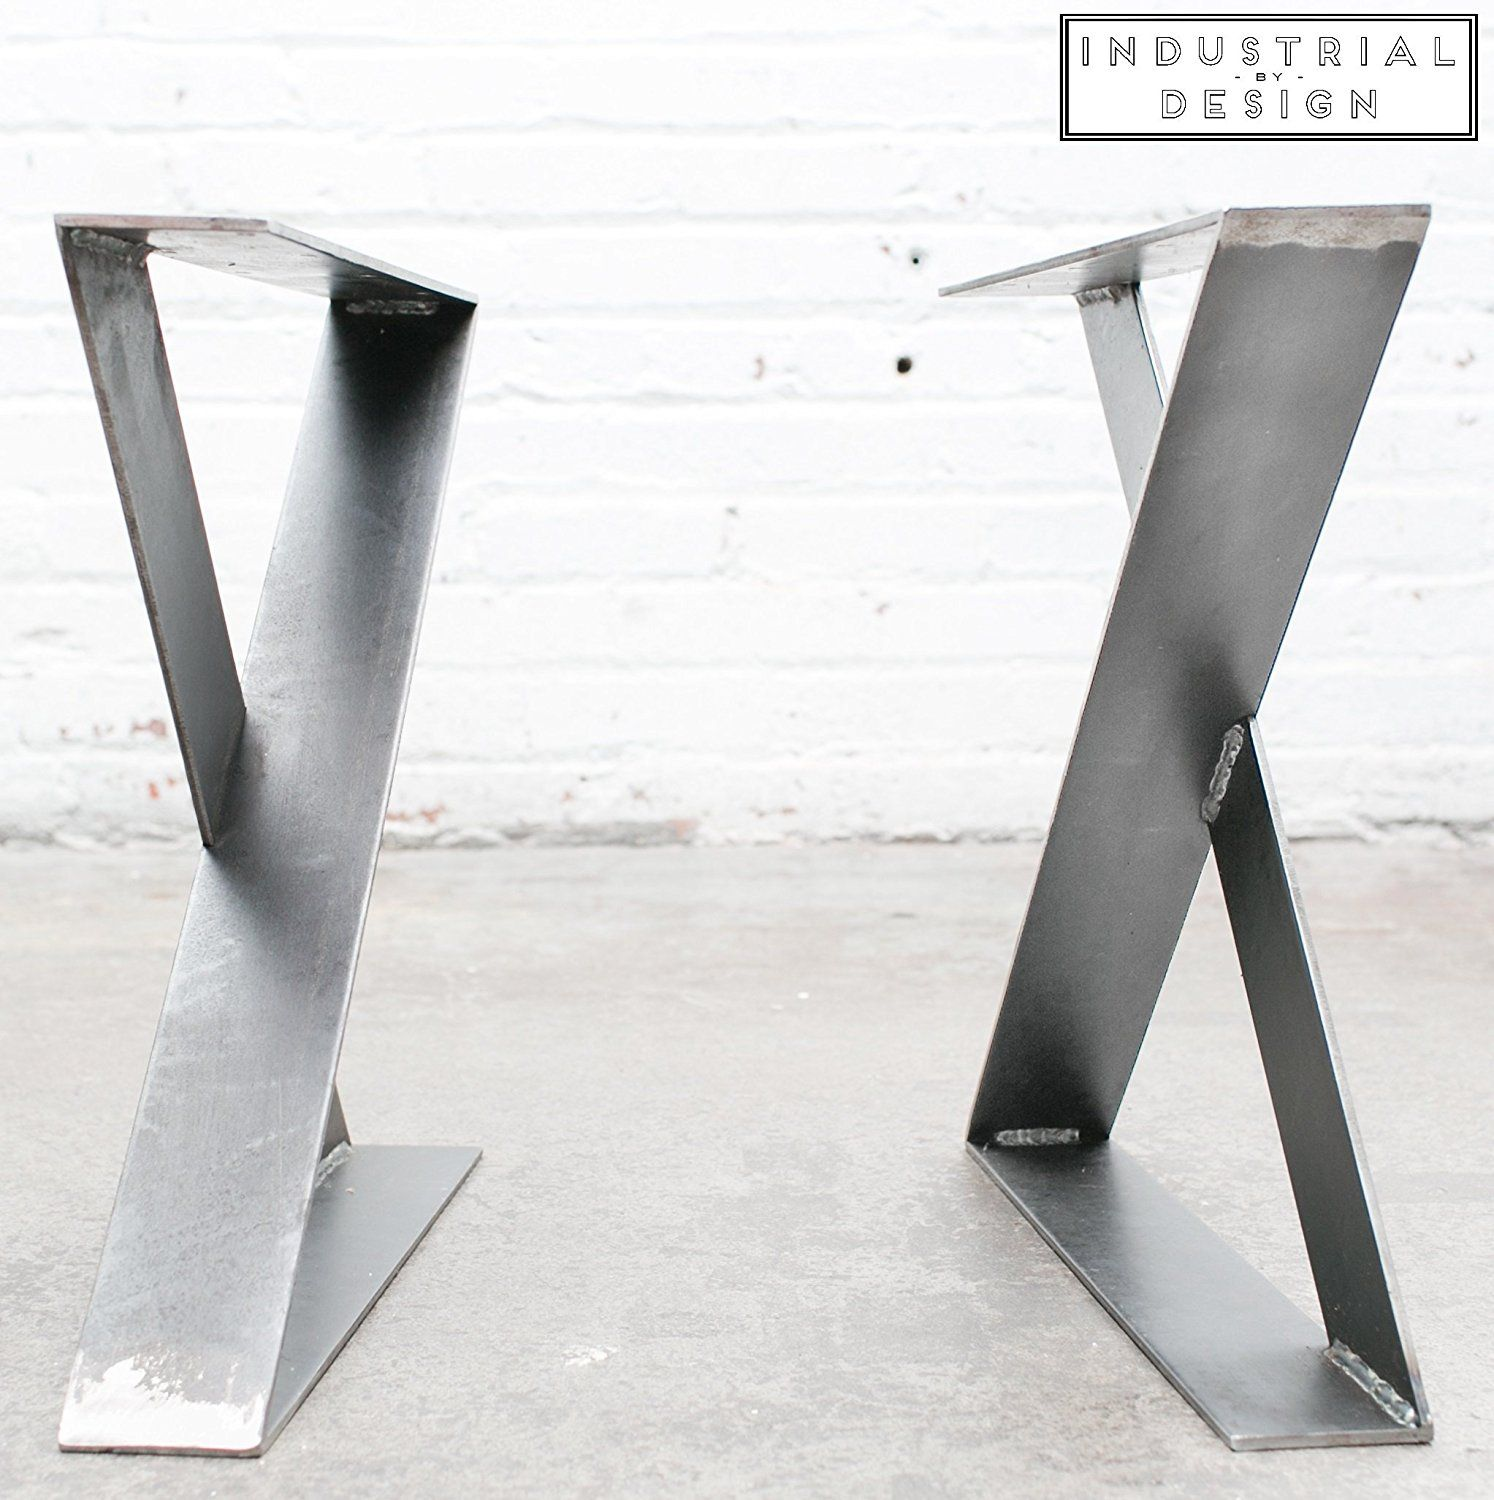 16 X Style Modern Frame Legs Raw Steel Set Of 2 Industrial Strength Table Legs 16 Height X 16 Length X 2 Metal Table Legs Table Legs Steel Table Legs